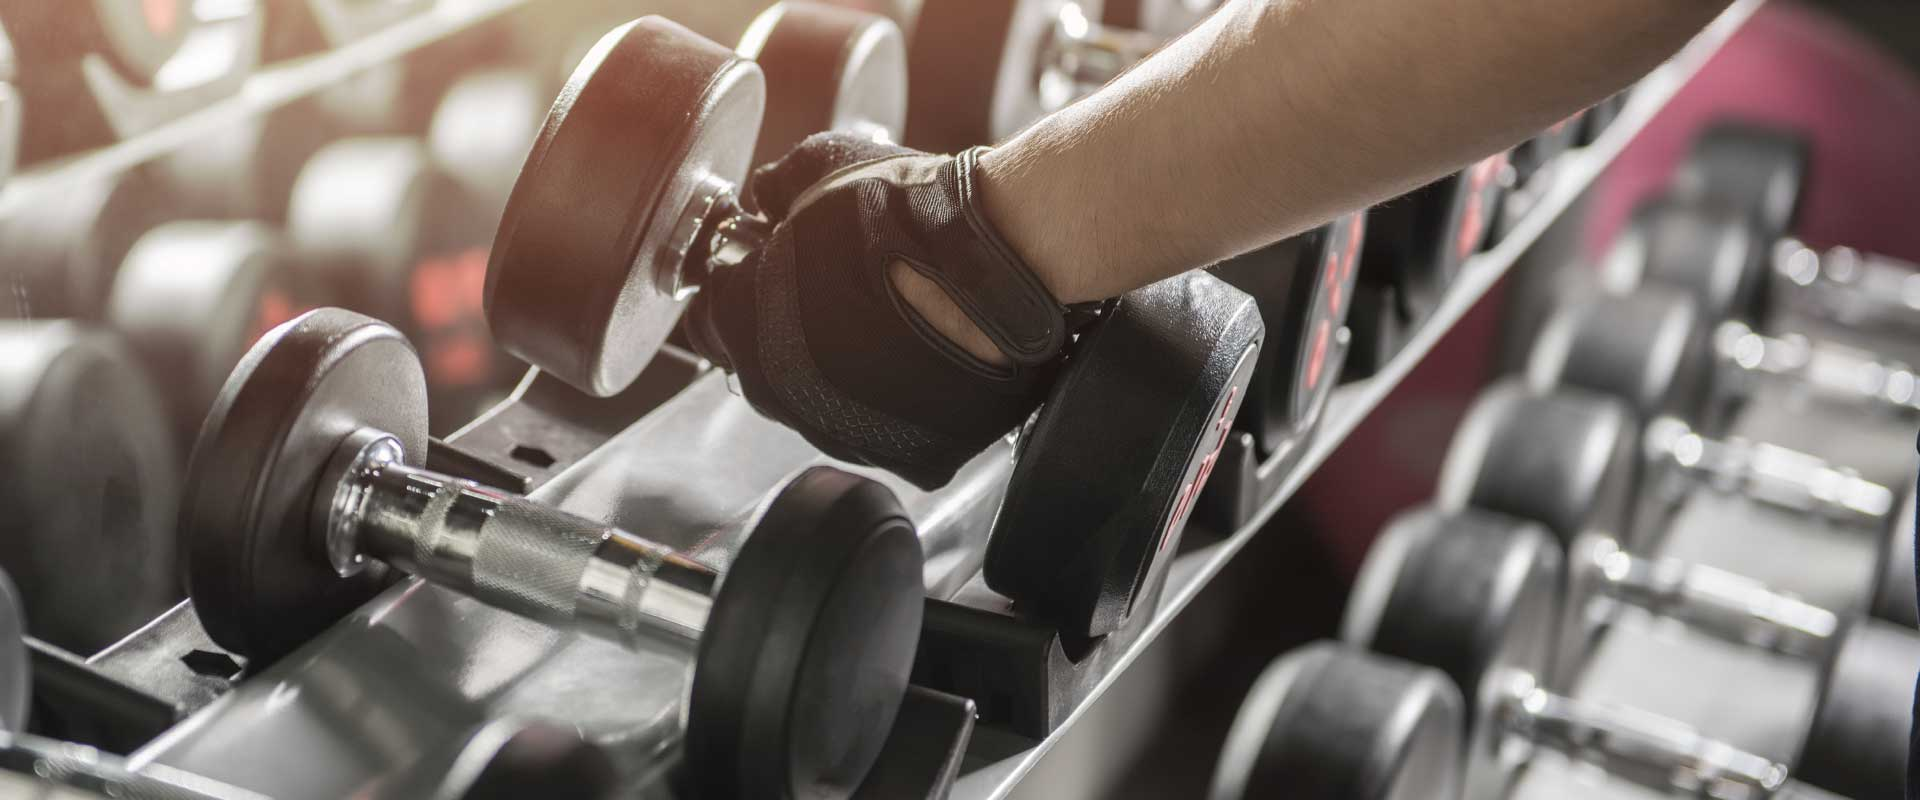 Nine home gym essentials you need dumbells